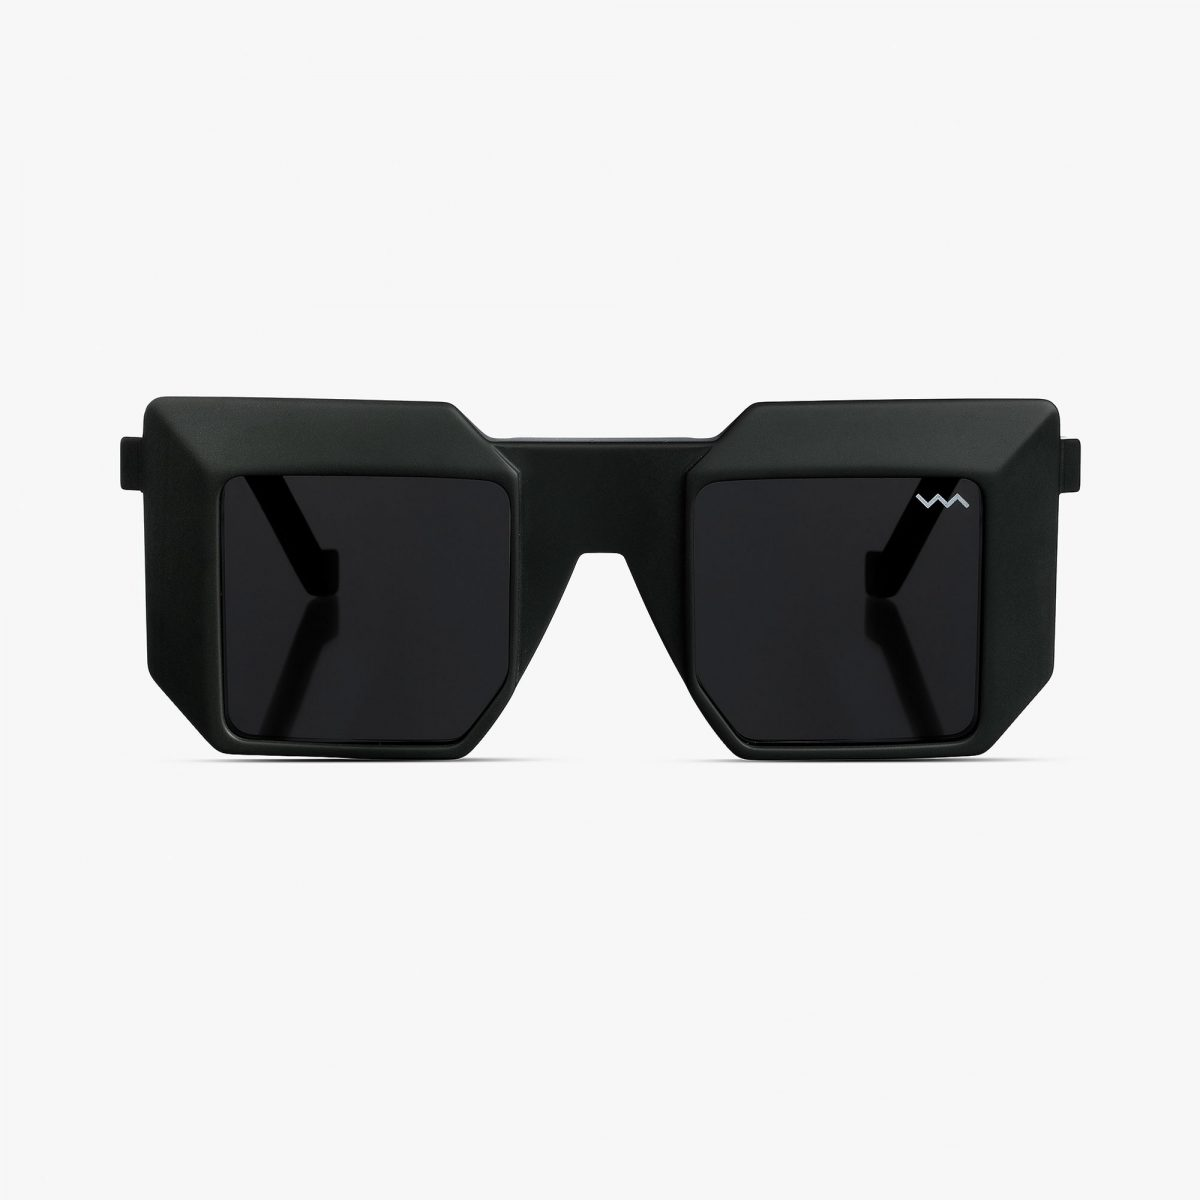 VAVA EYEWEAR ONLINE SHOP BL0009 SUNGLASS BLACK MATTE SIDE